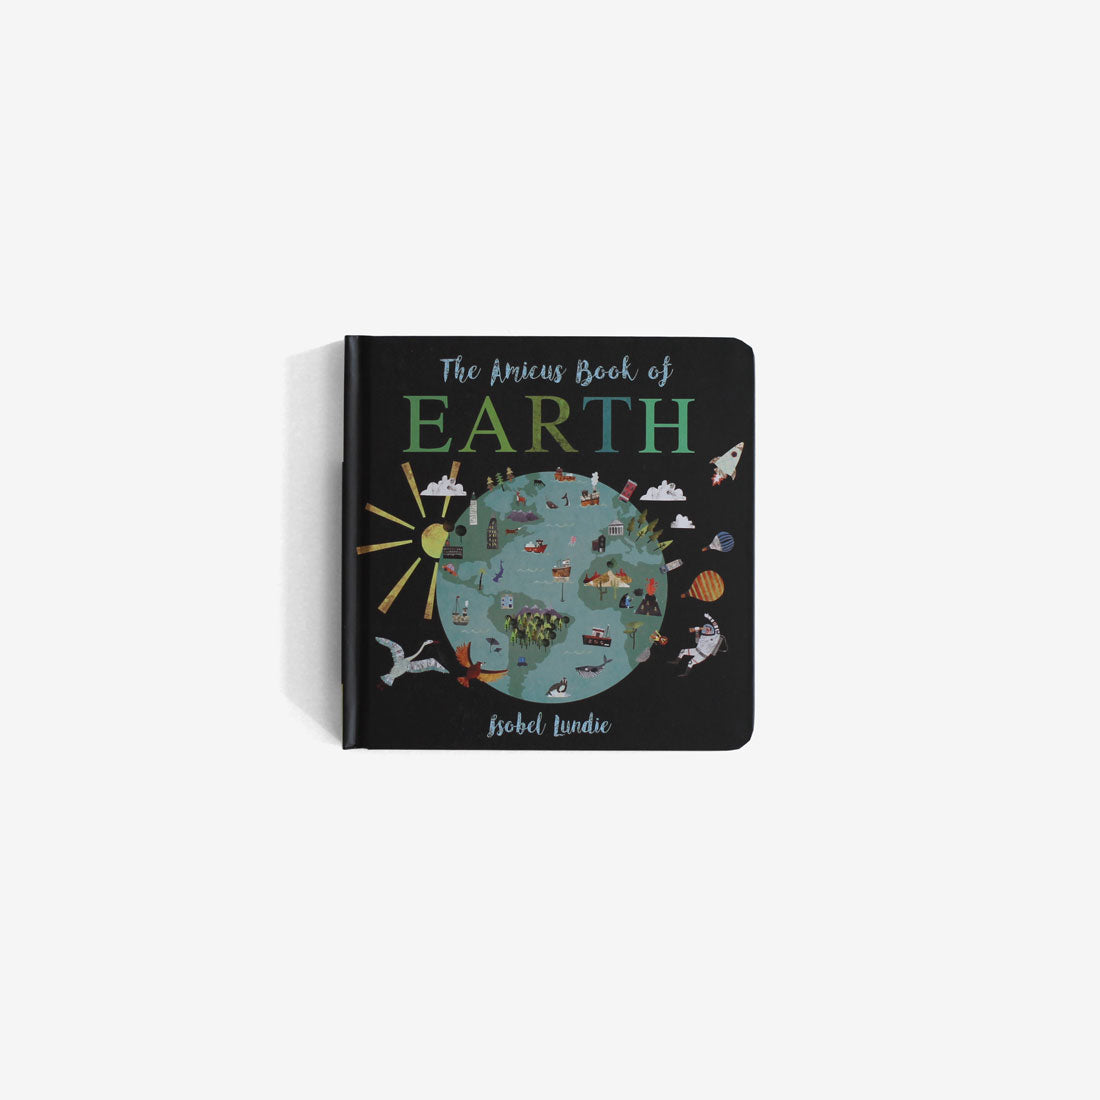 The Amicus Book of Earth